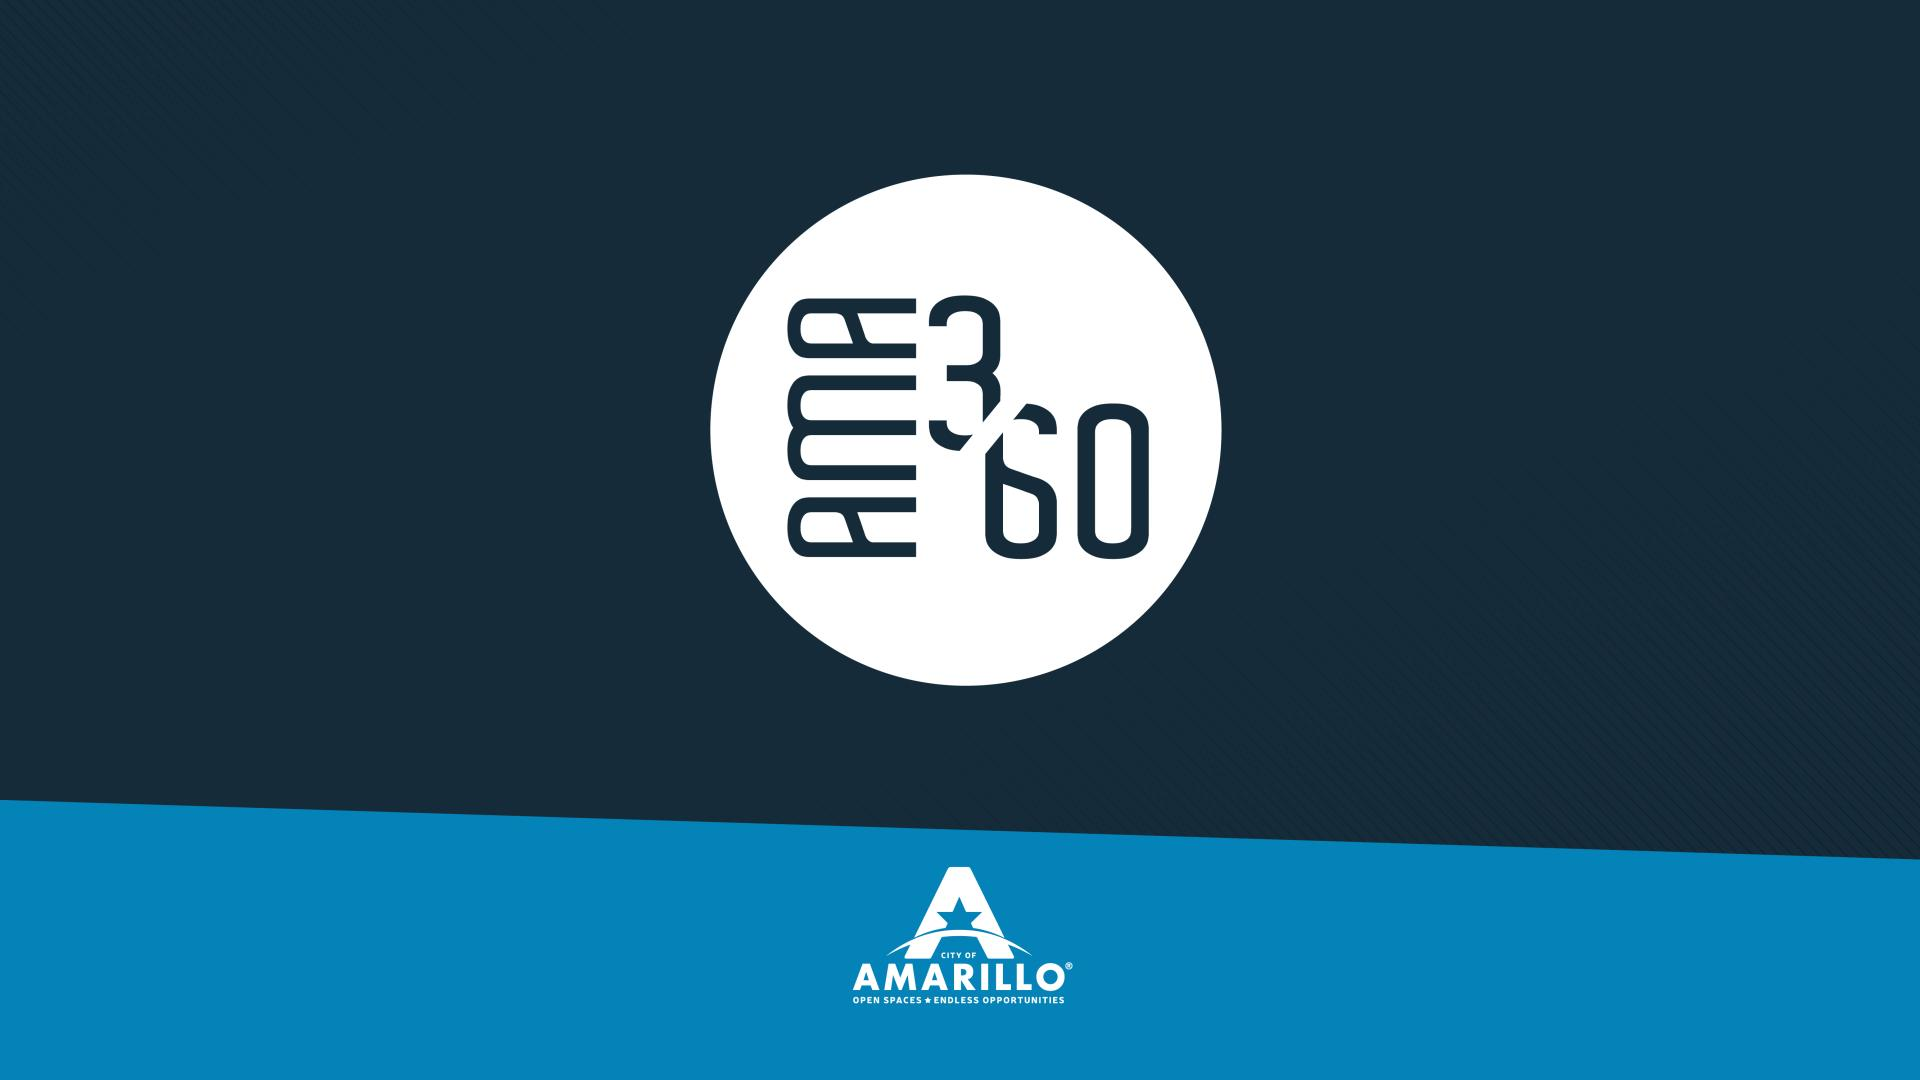 Amarillo 3/60 – Sept. 20, 2018